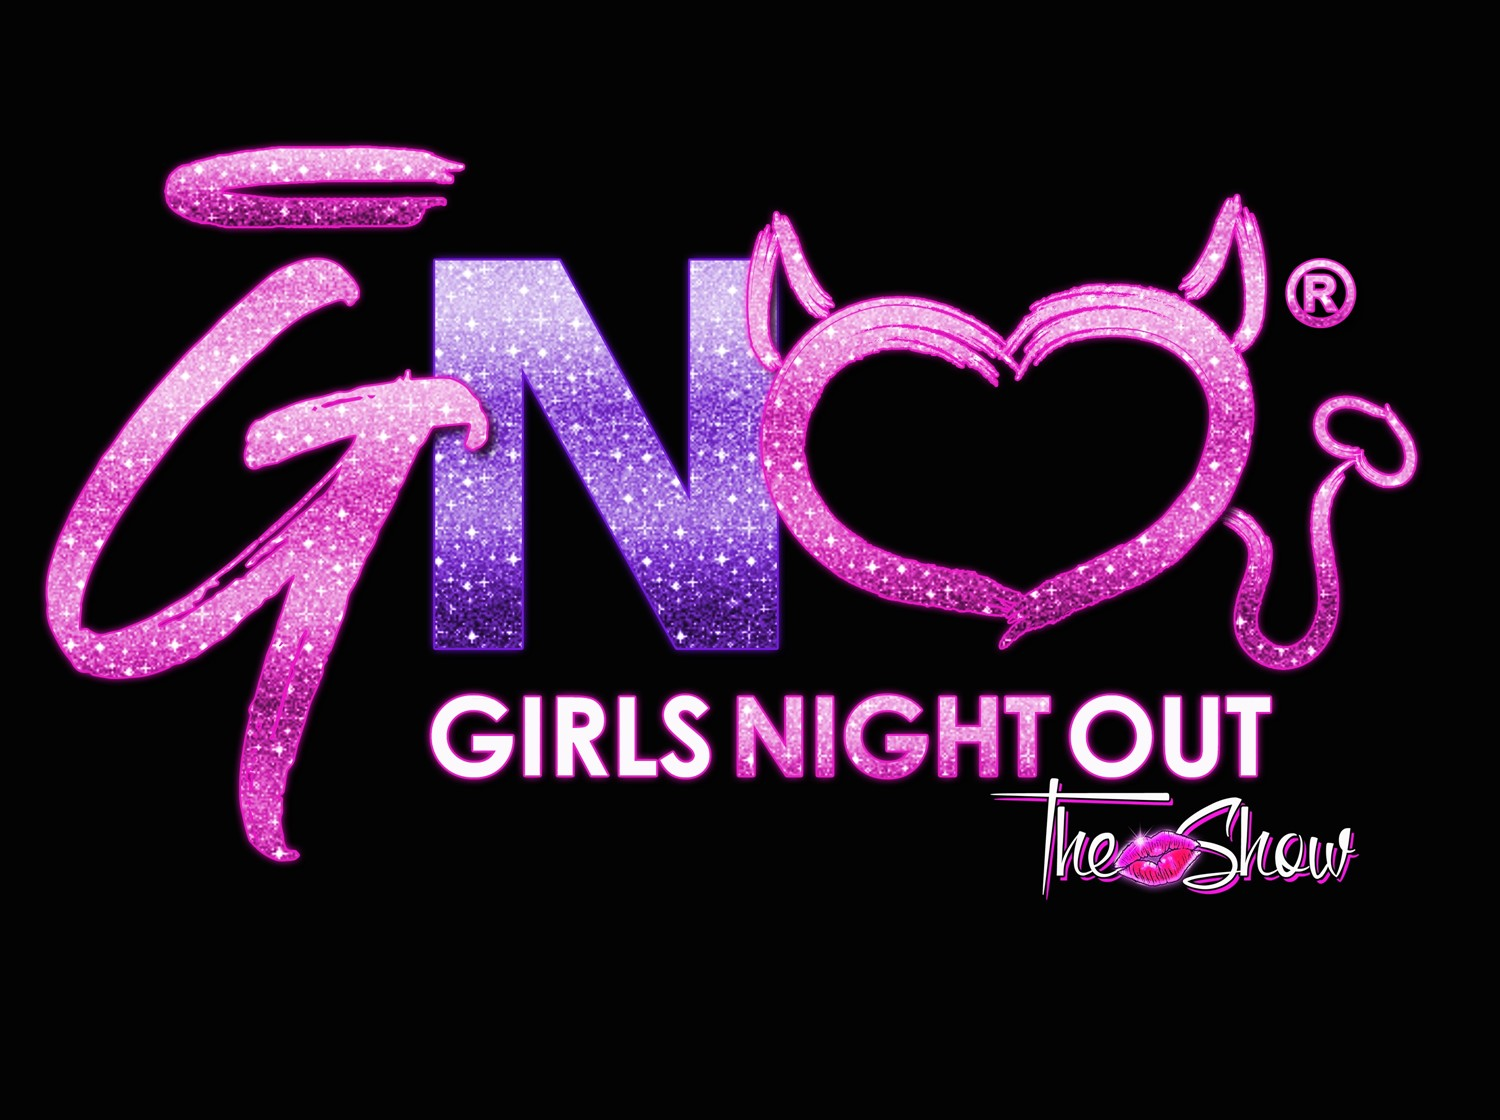 Furnace 41 (18+) Jonesboro, GA on Feb 27, 21:00@Furnace 41 - Buy tickets and Get information on Girls Night Out the Show tickets.girlsnightouttheshow.com